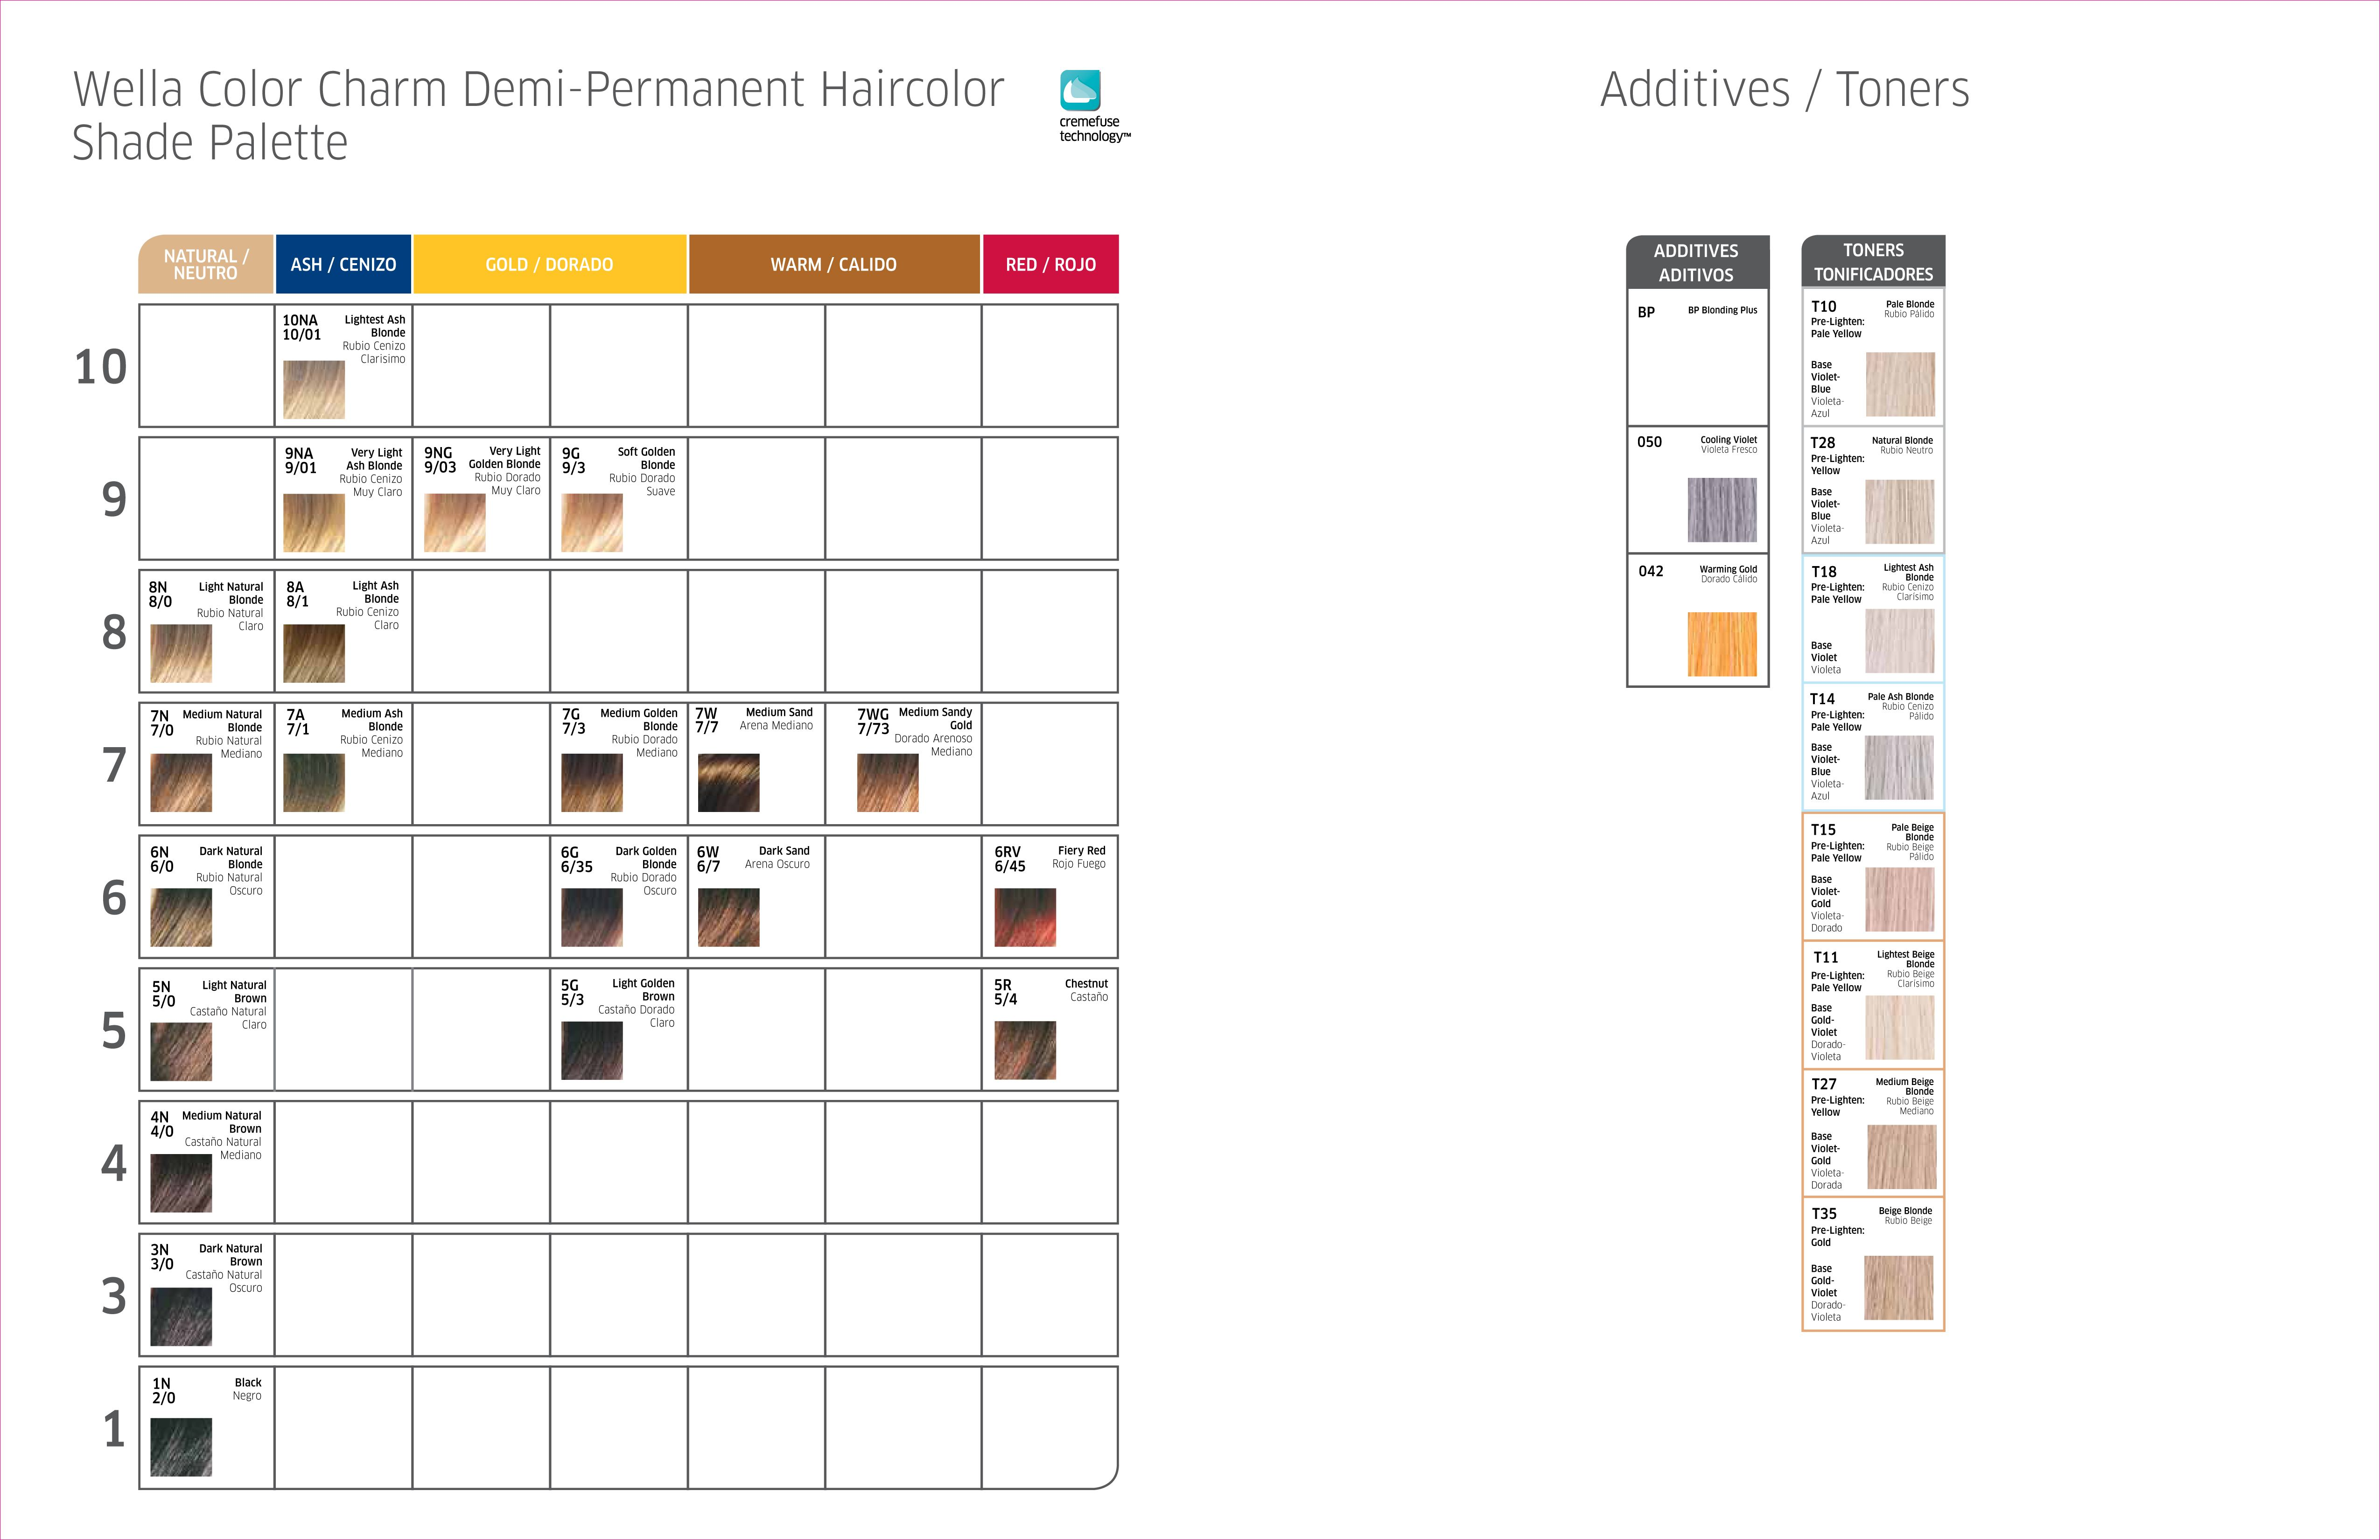 Wella color charm demi permanent haircolor shade palette additives  toners also information about hair rh pinterest